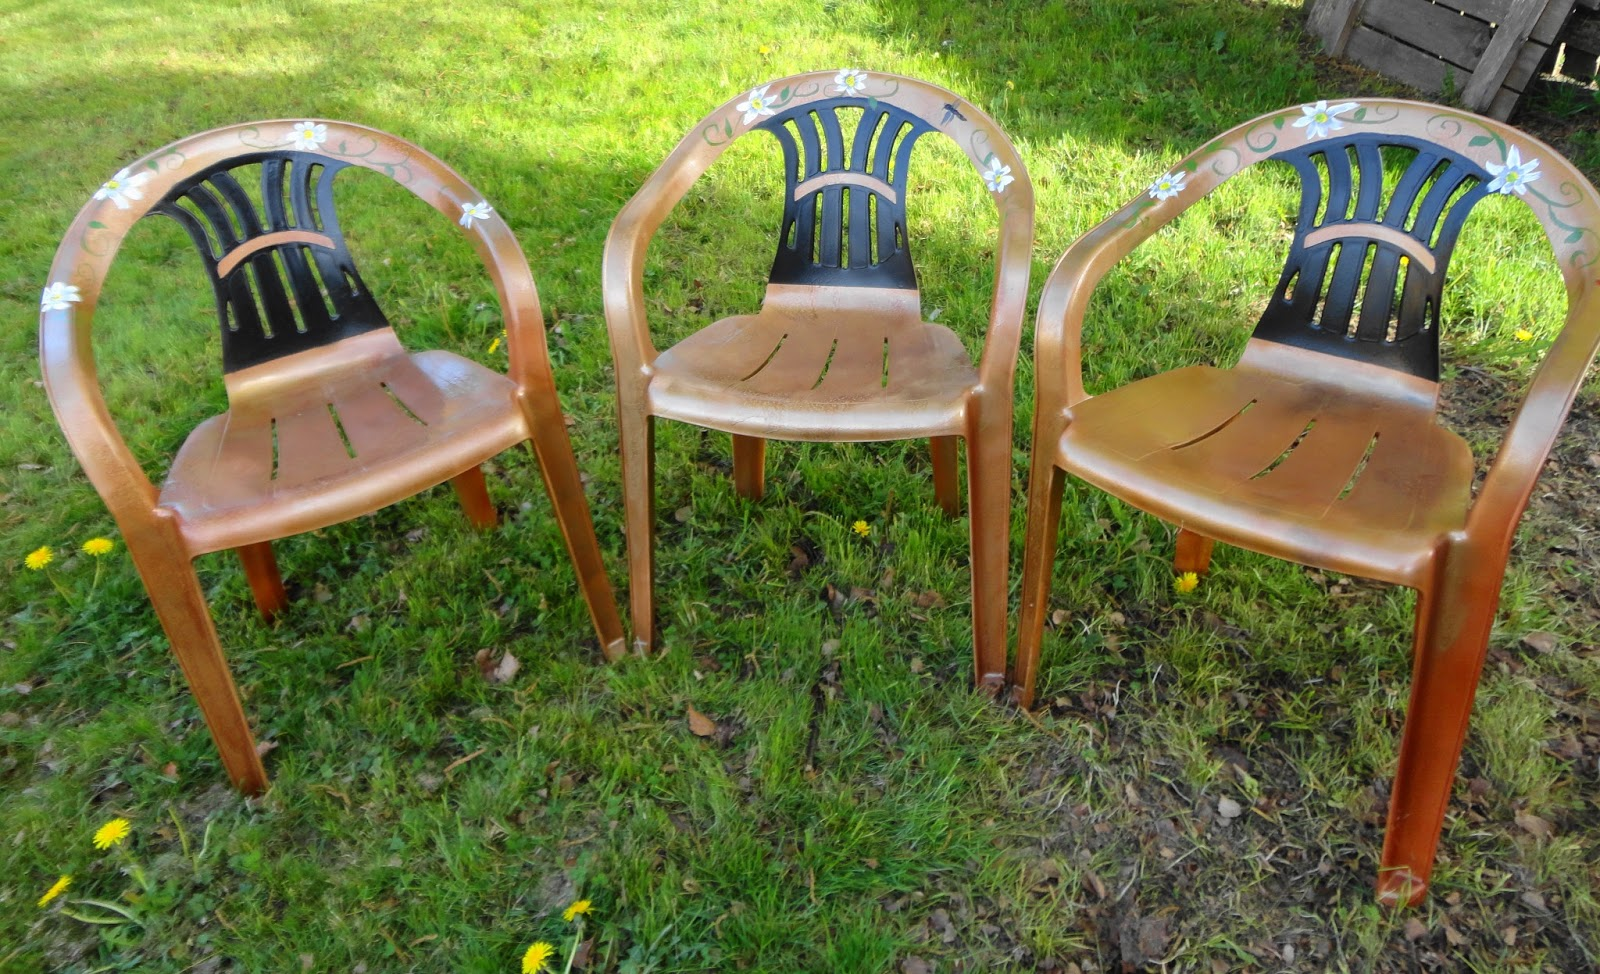 how to paint plastic chairs chair glides for tile floors www cheriesforgetmenots com new life old white i have five and only been able complete three so far as the store had cans of each used a whole can